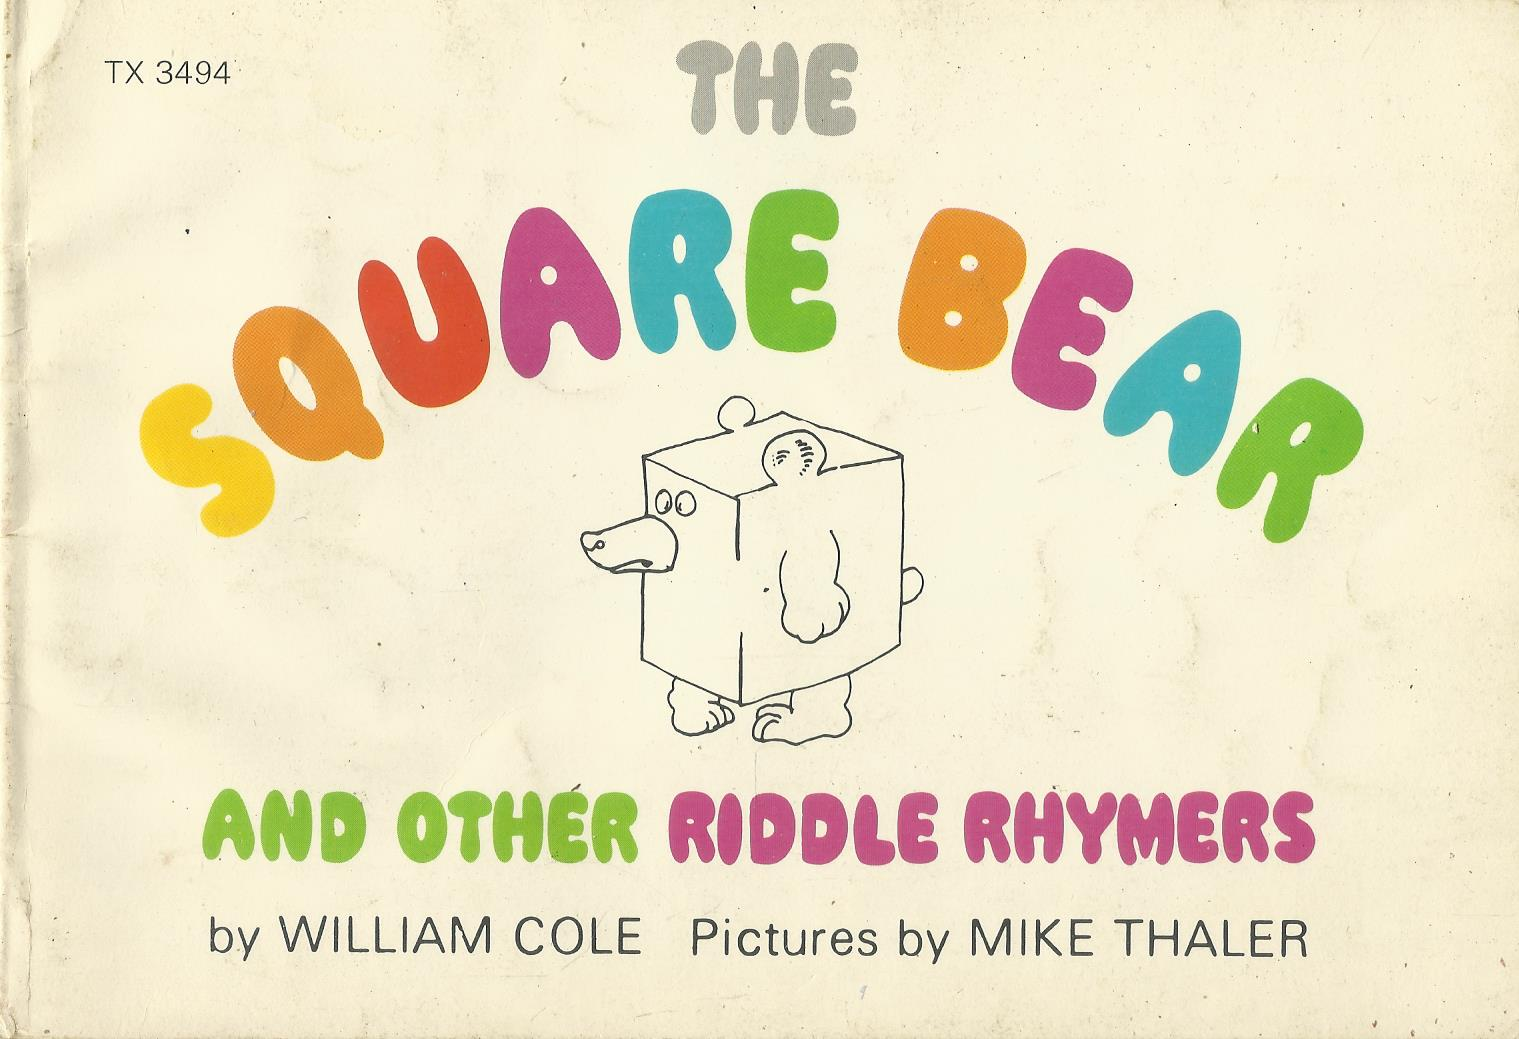 The Square Bear and Other Riddle Rhymers